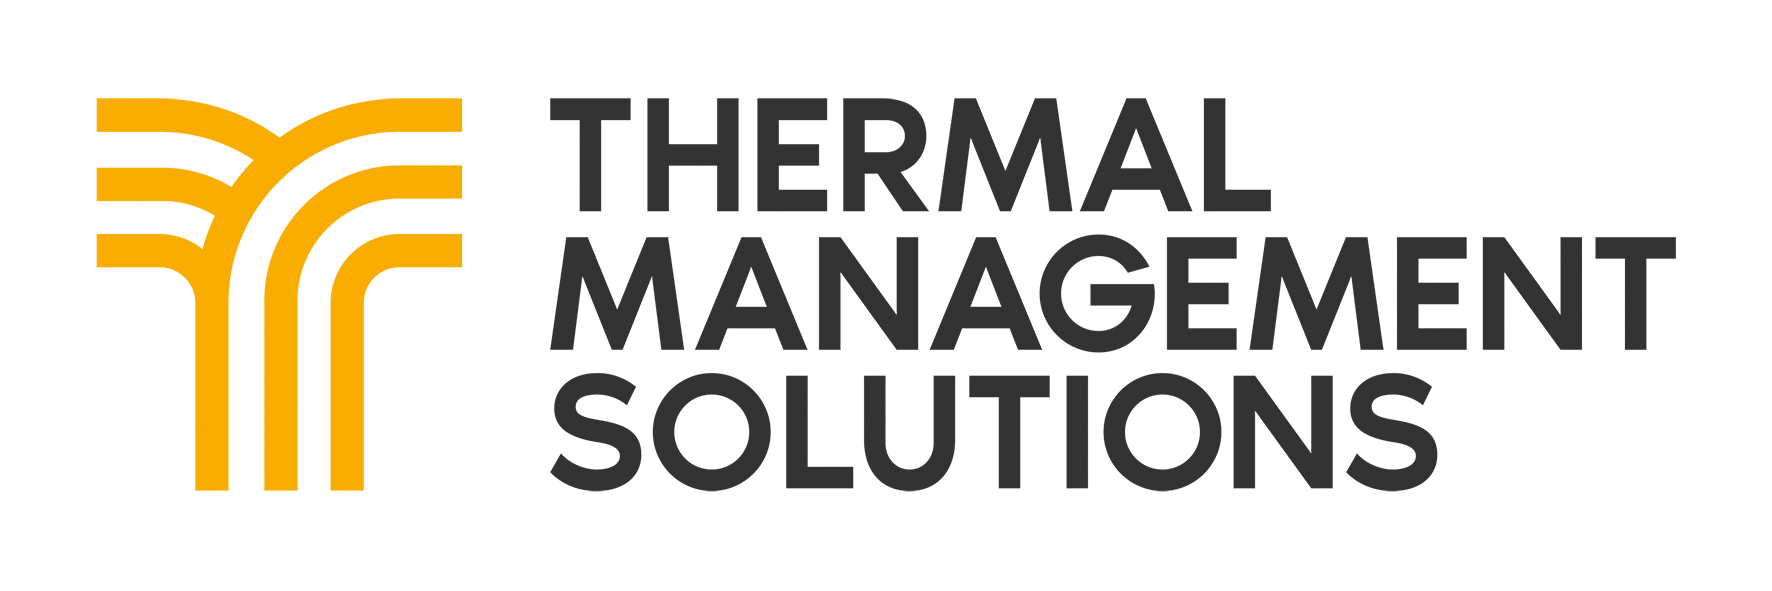 Thermal Management Solutions Group